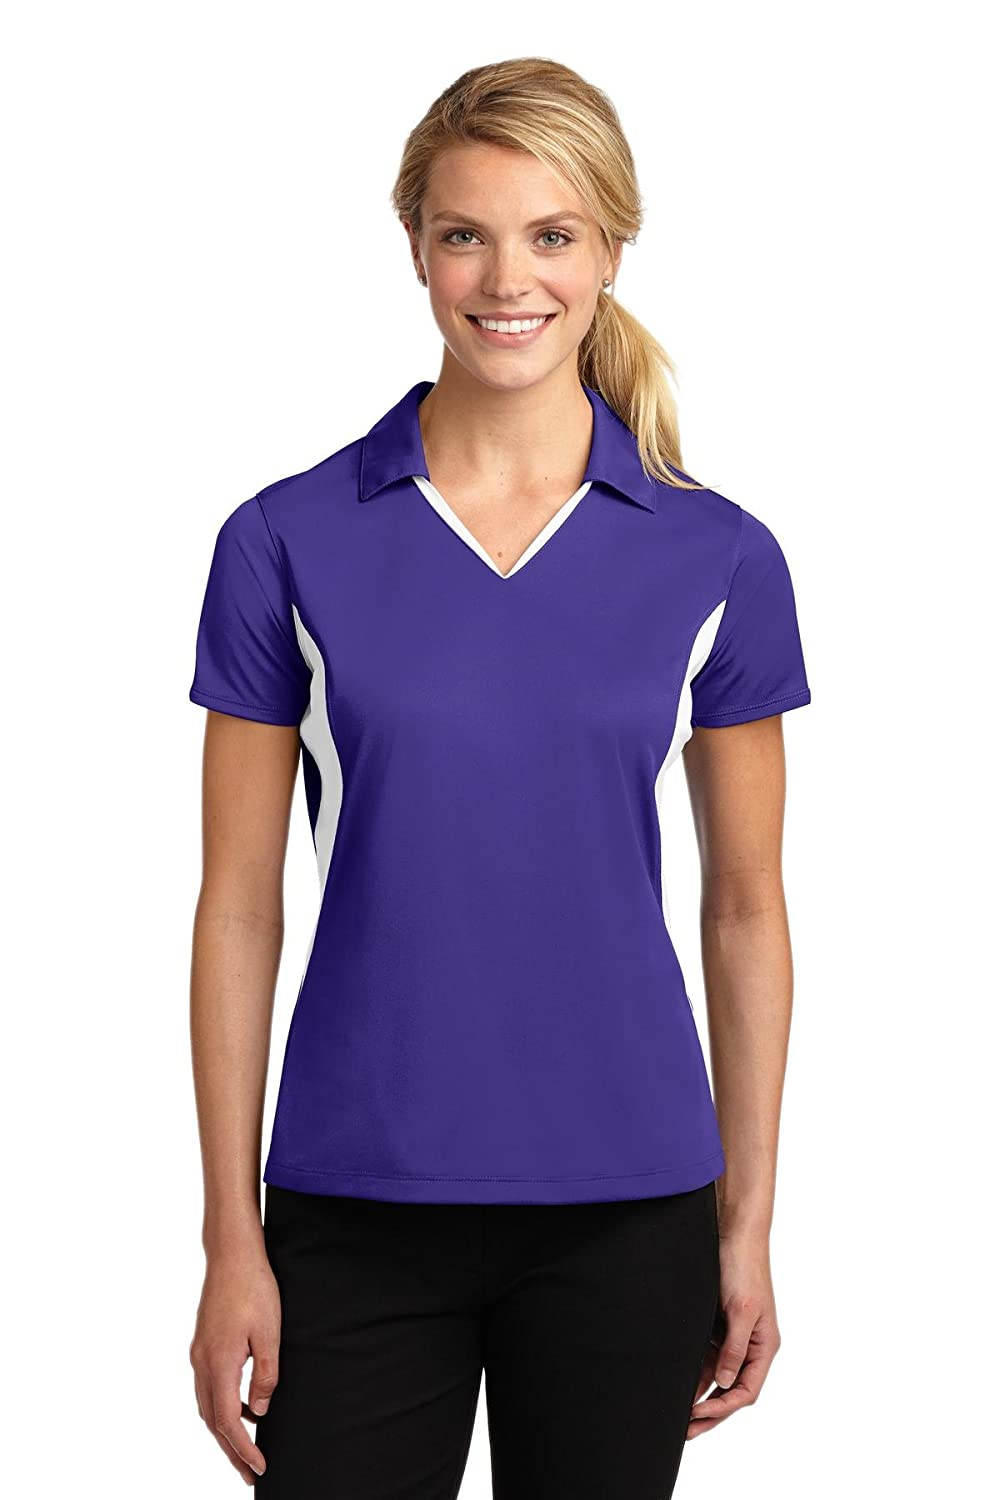 Sport-Tek Ladies Side Blocked Micropique Sport-Wick Polo LST655 Purple//White